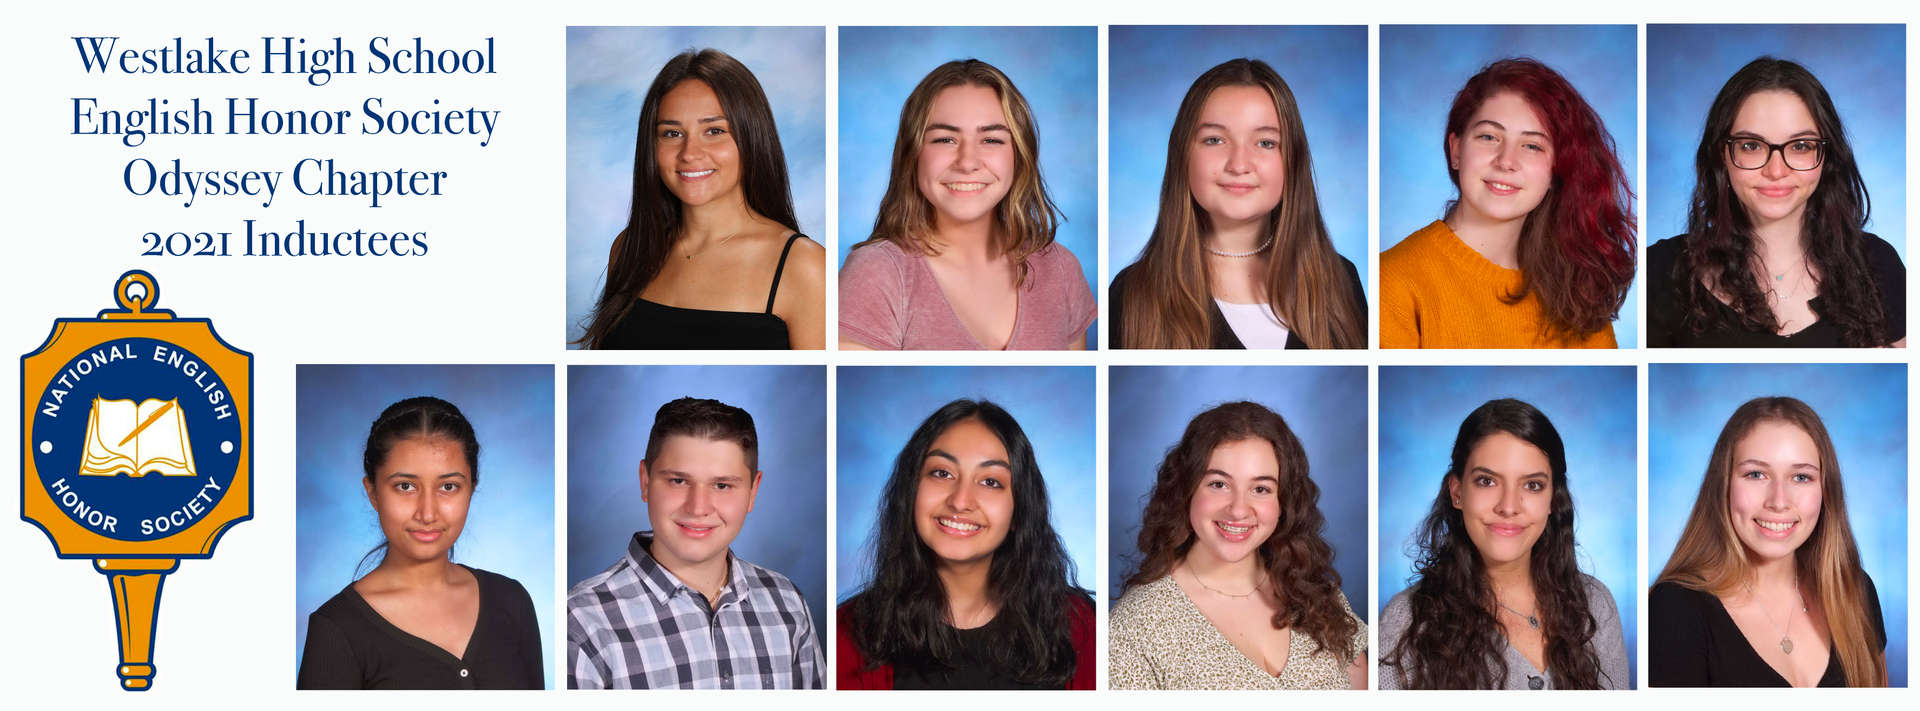 11 students newly inducted into English Honor Society